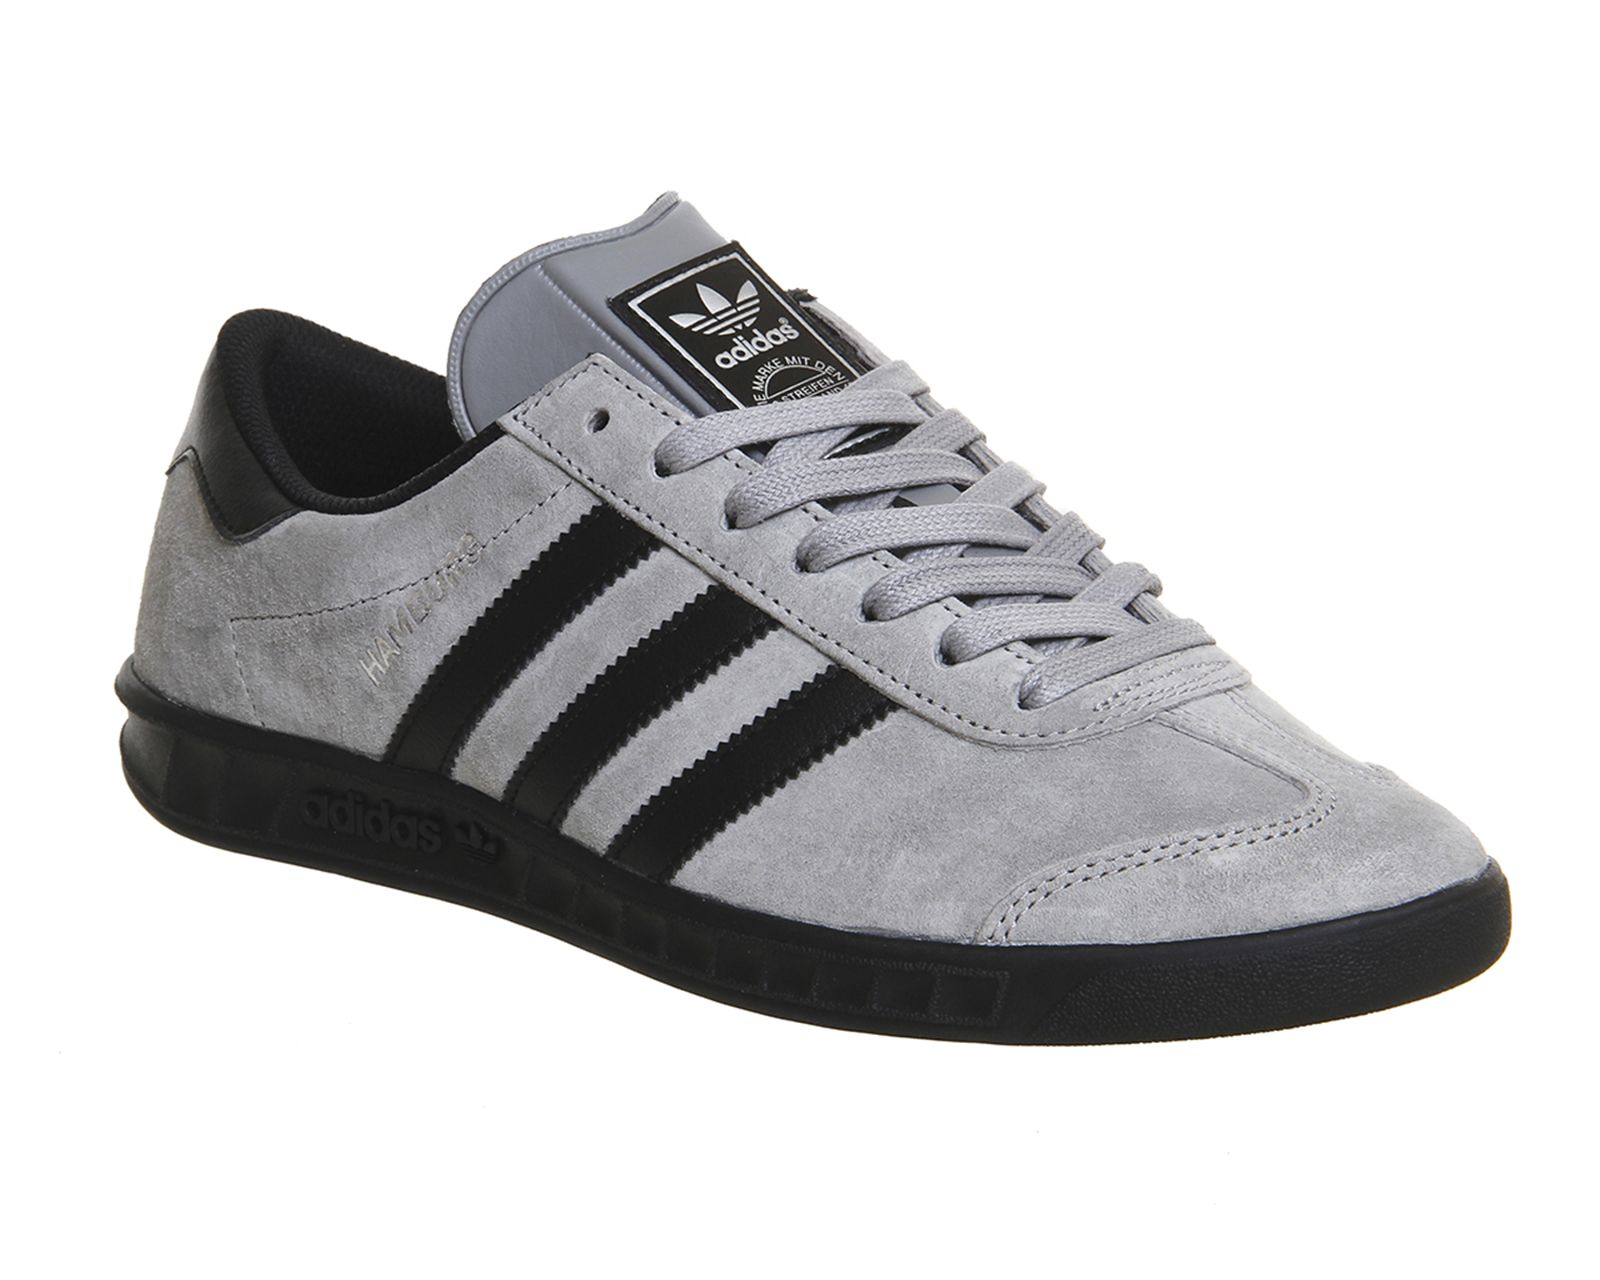 568029993272 Grey and Black Adidas Hamburg reduced to £40